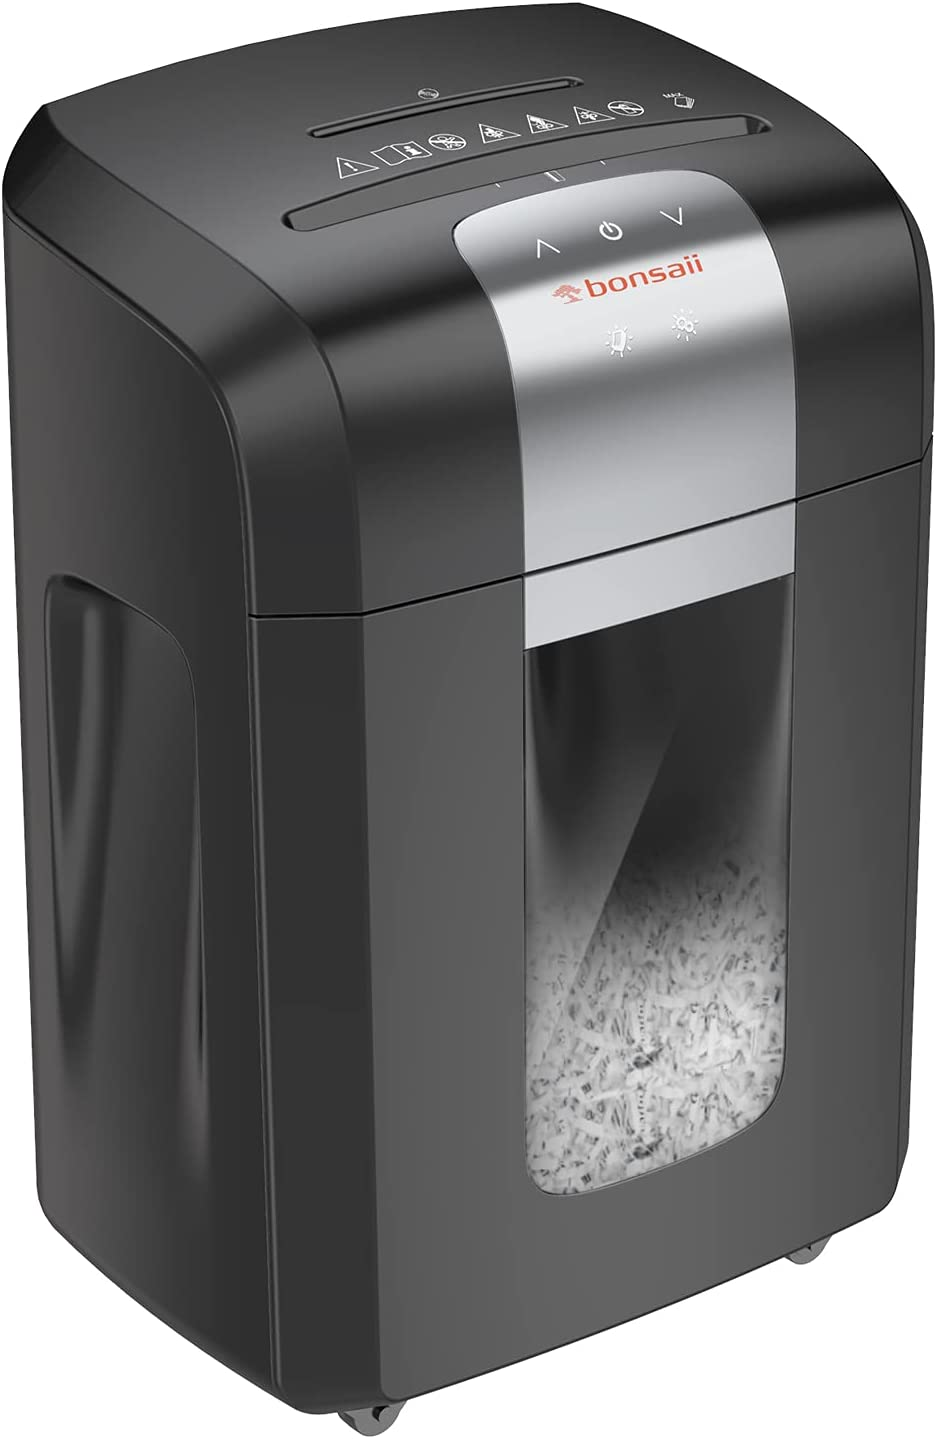 Bonsaii Paper Shredder, 120 Minutes Running Time, 14-Sheet Heavy Duty Cross-Cut CD Credit Card Shredder for Office with 6 Gallon Pull-Out Basket and 4 Casters, Black